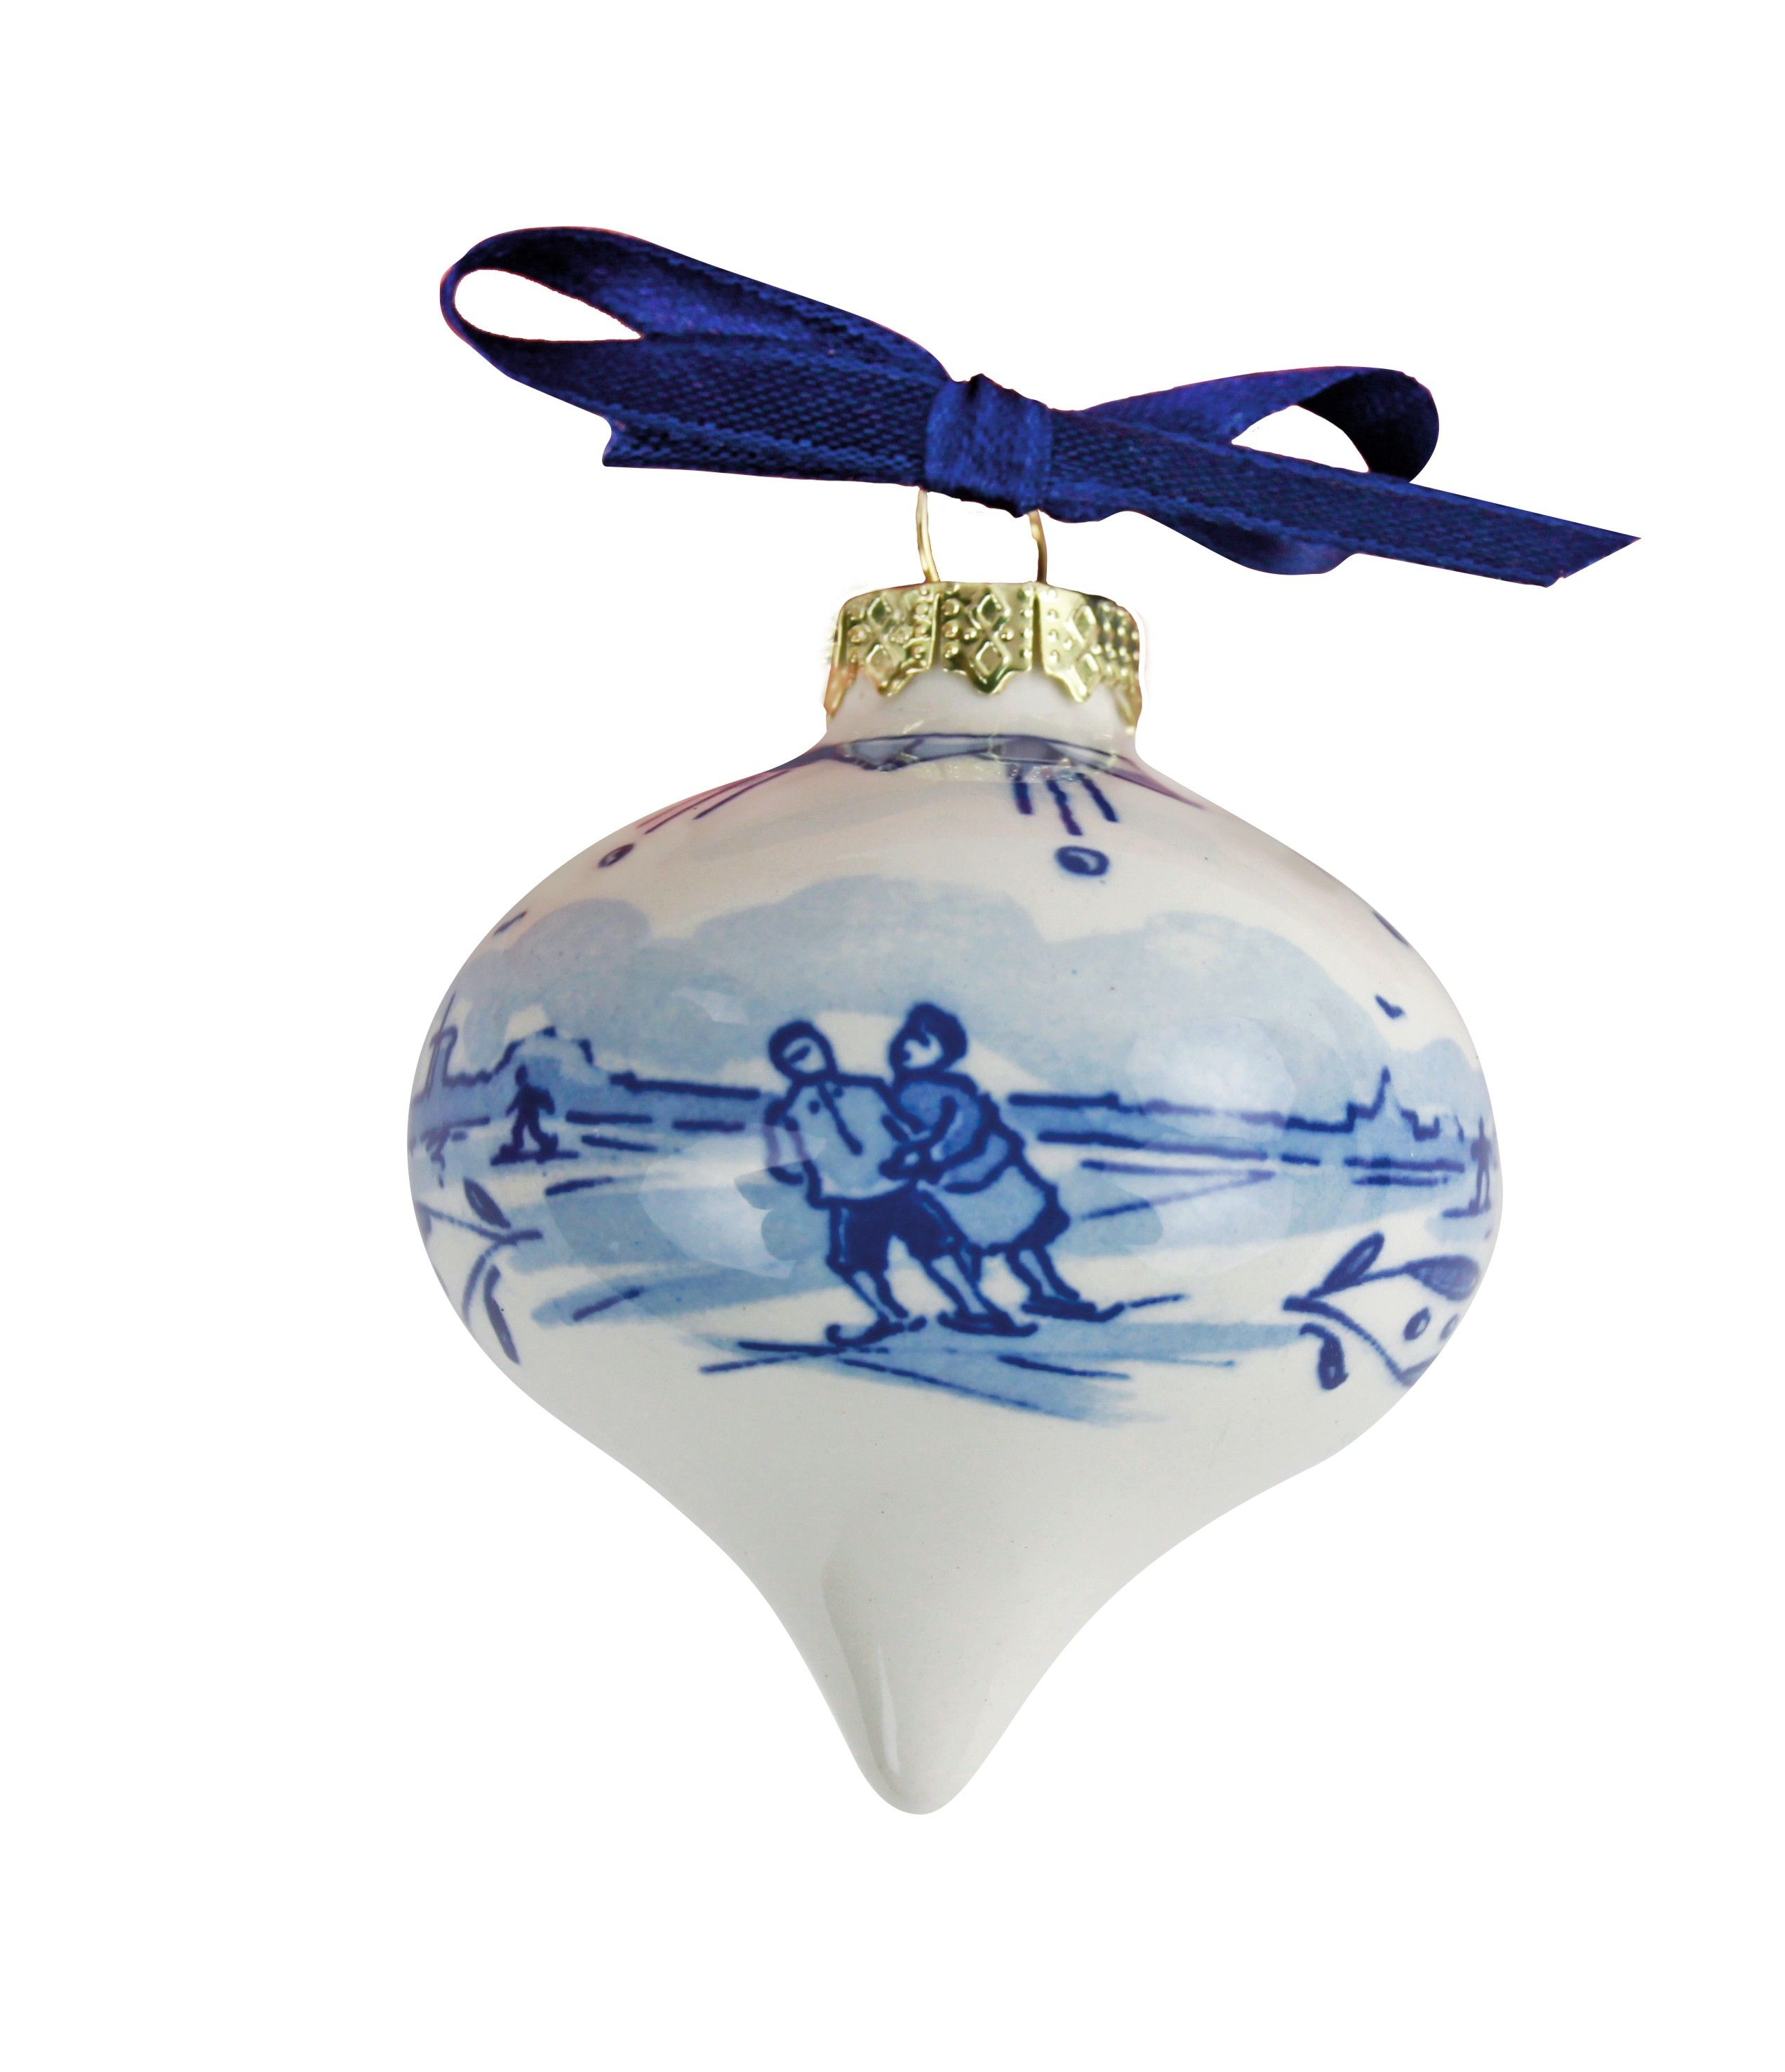 Delft Blue Christmas Tree Decorations Of Royal Delft Blue Christmas Blue Christmas Tree Decorations Blue Christmas Tree